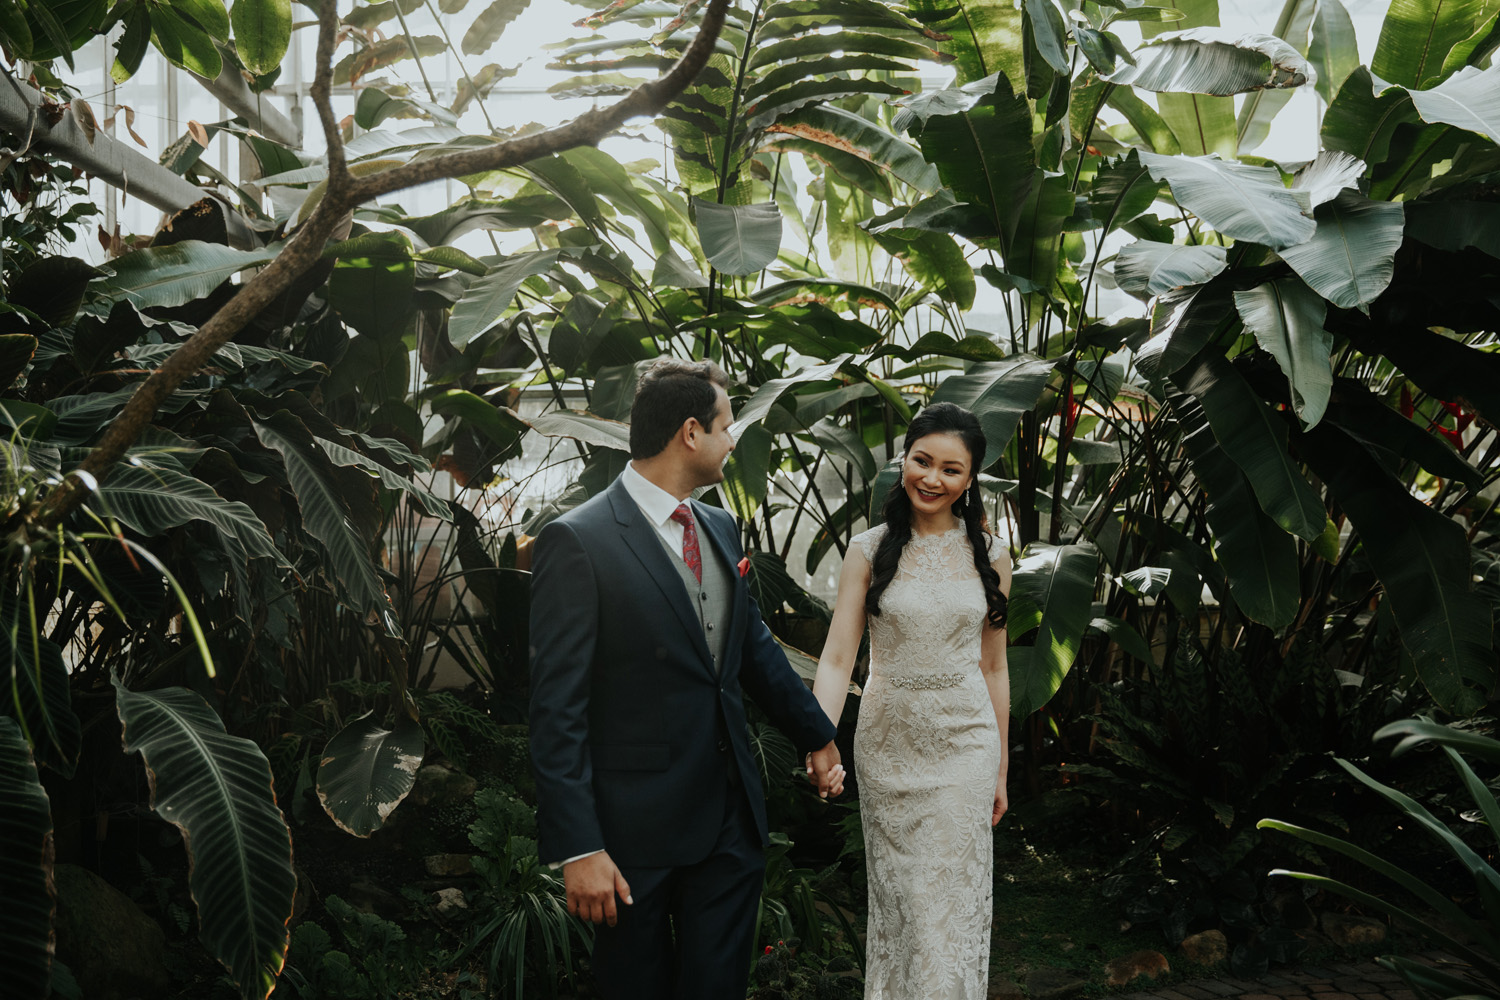 atlanta wedding photographers destination elopement photographer engagement photography atlanta botanical gardens_1047.jpg